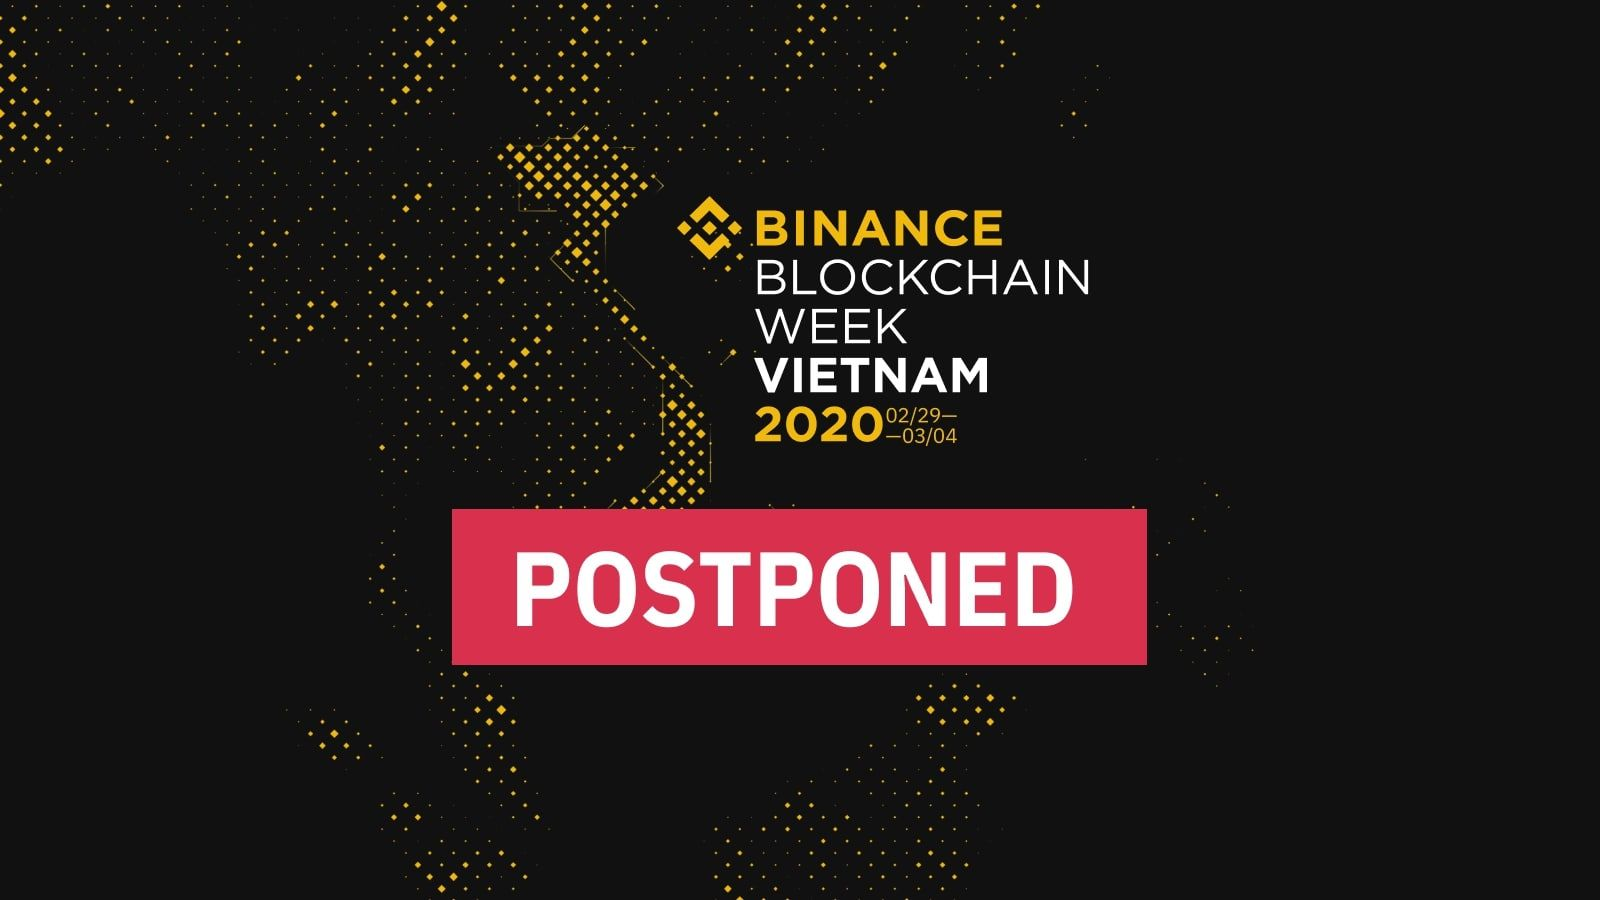 binanceblockchainweek-postponed